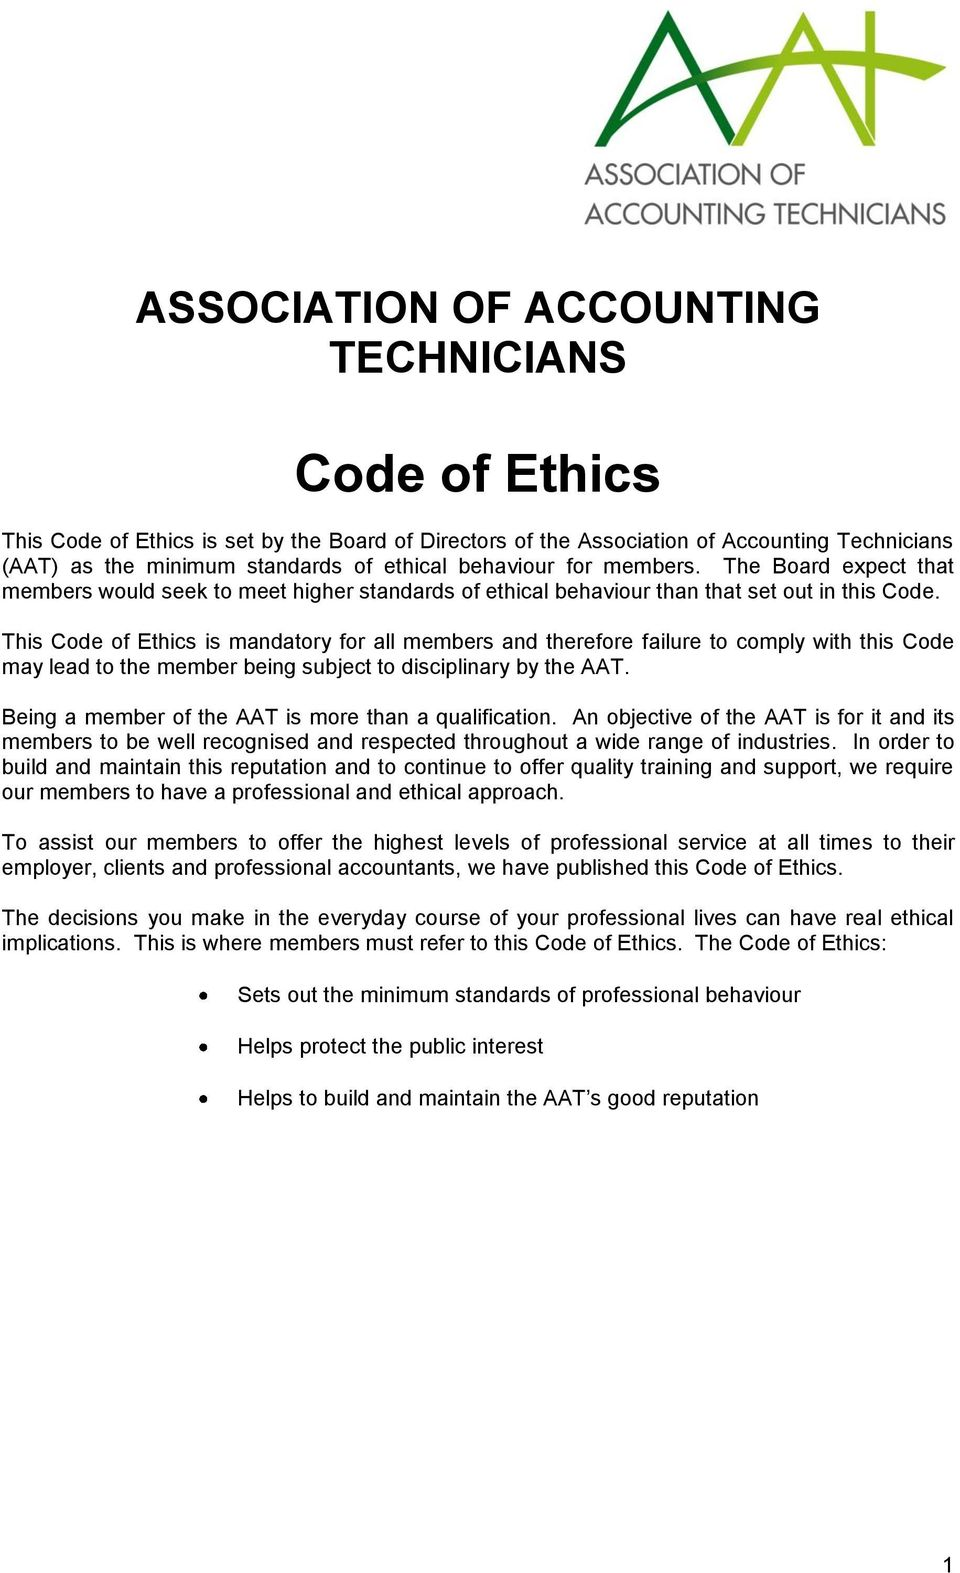 This Code of Ethics is mandatory for all members and therefore failure to comply with this Code may lead to the member being subject to disciplinary by the AAT.